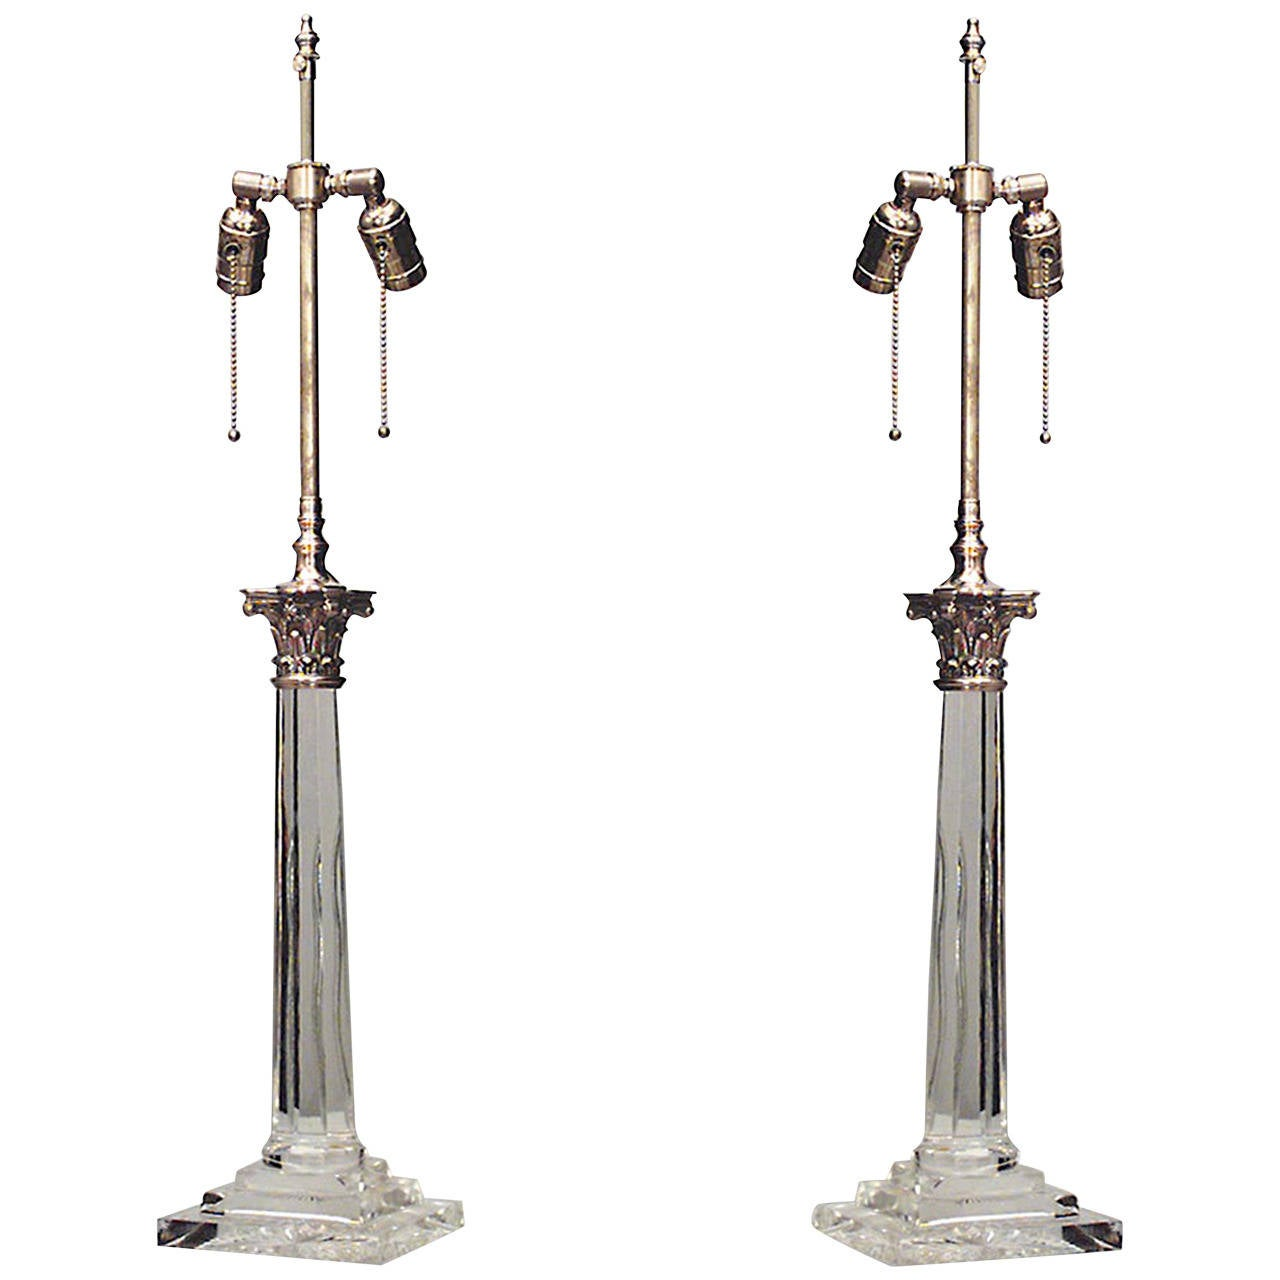 Pair of 20th c english georgian style crystal column table lamps english georgian style crystal column table lamps for sale aloadofball Choice Image